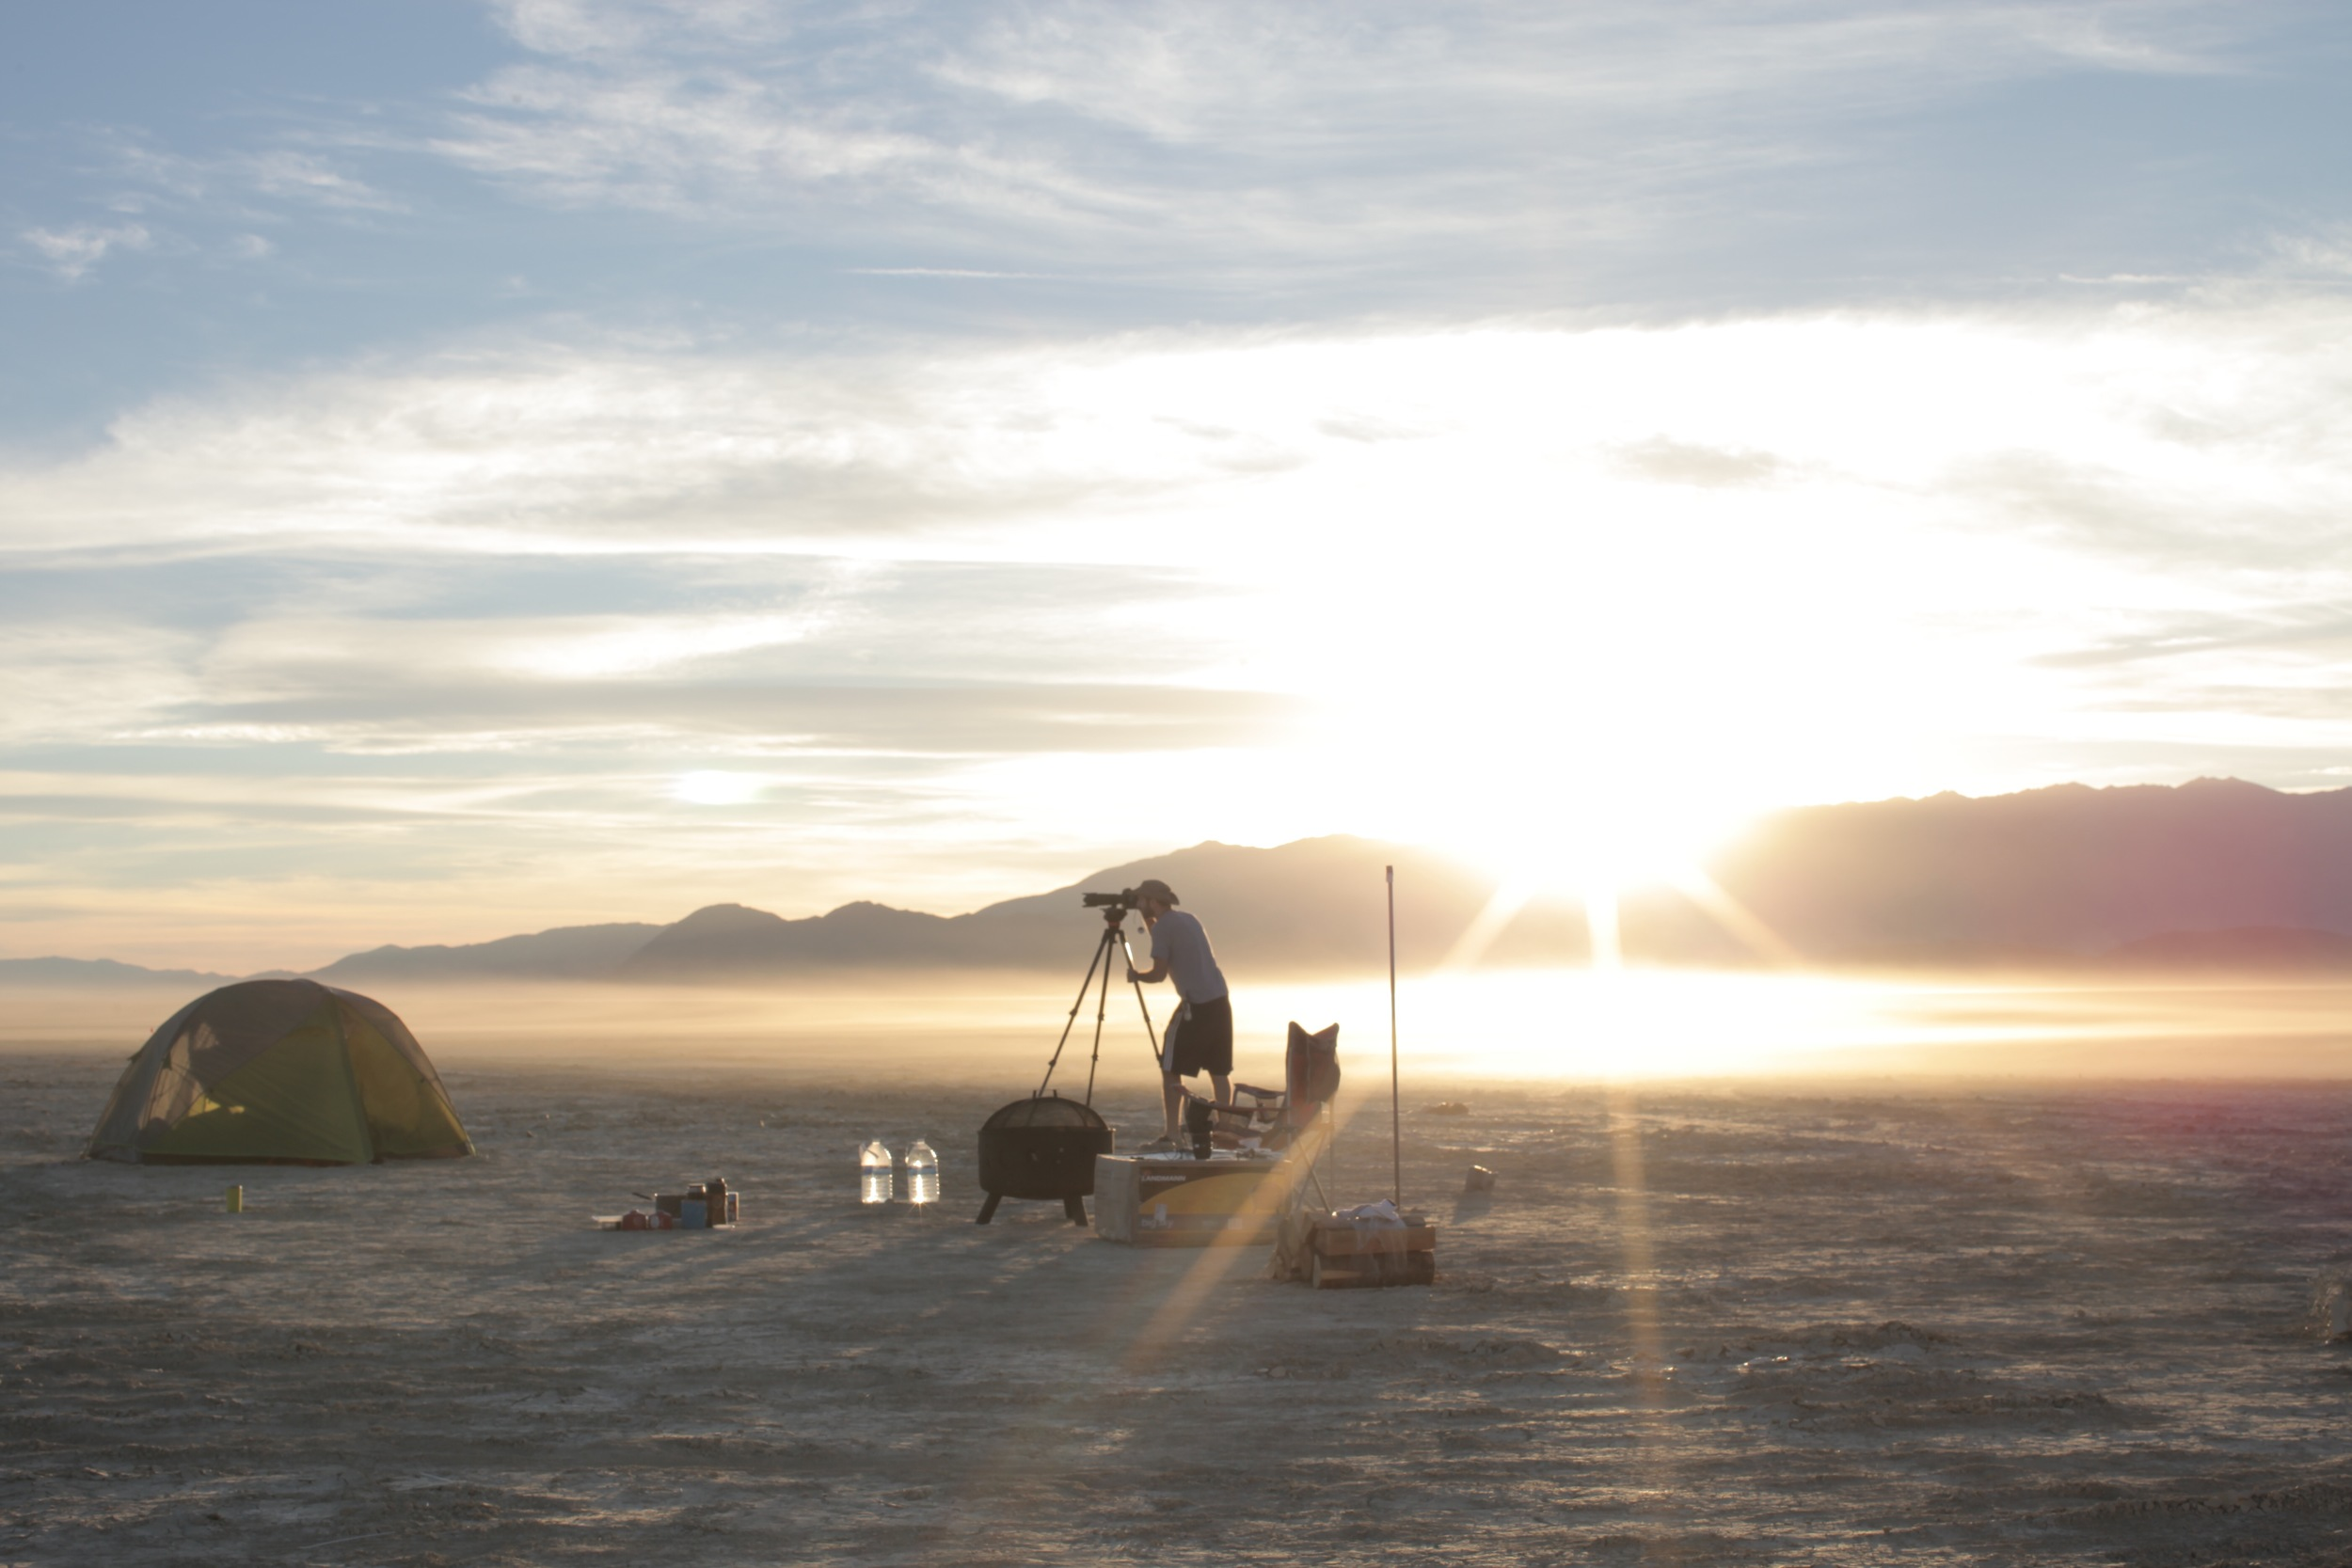 Alex Gorosh on location at Black Rock Desert for filming To Scale: The Solar System.